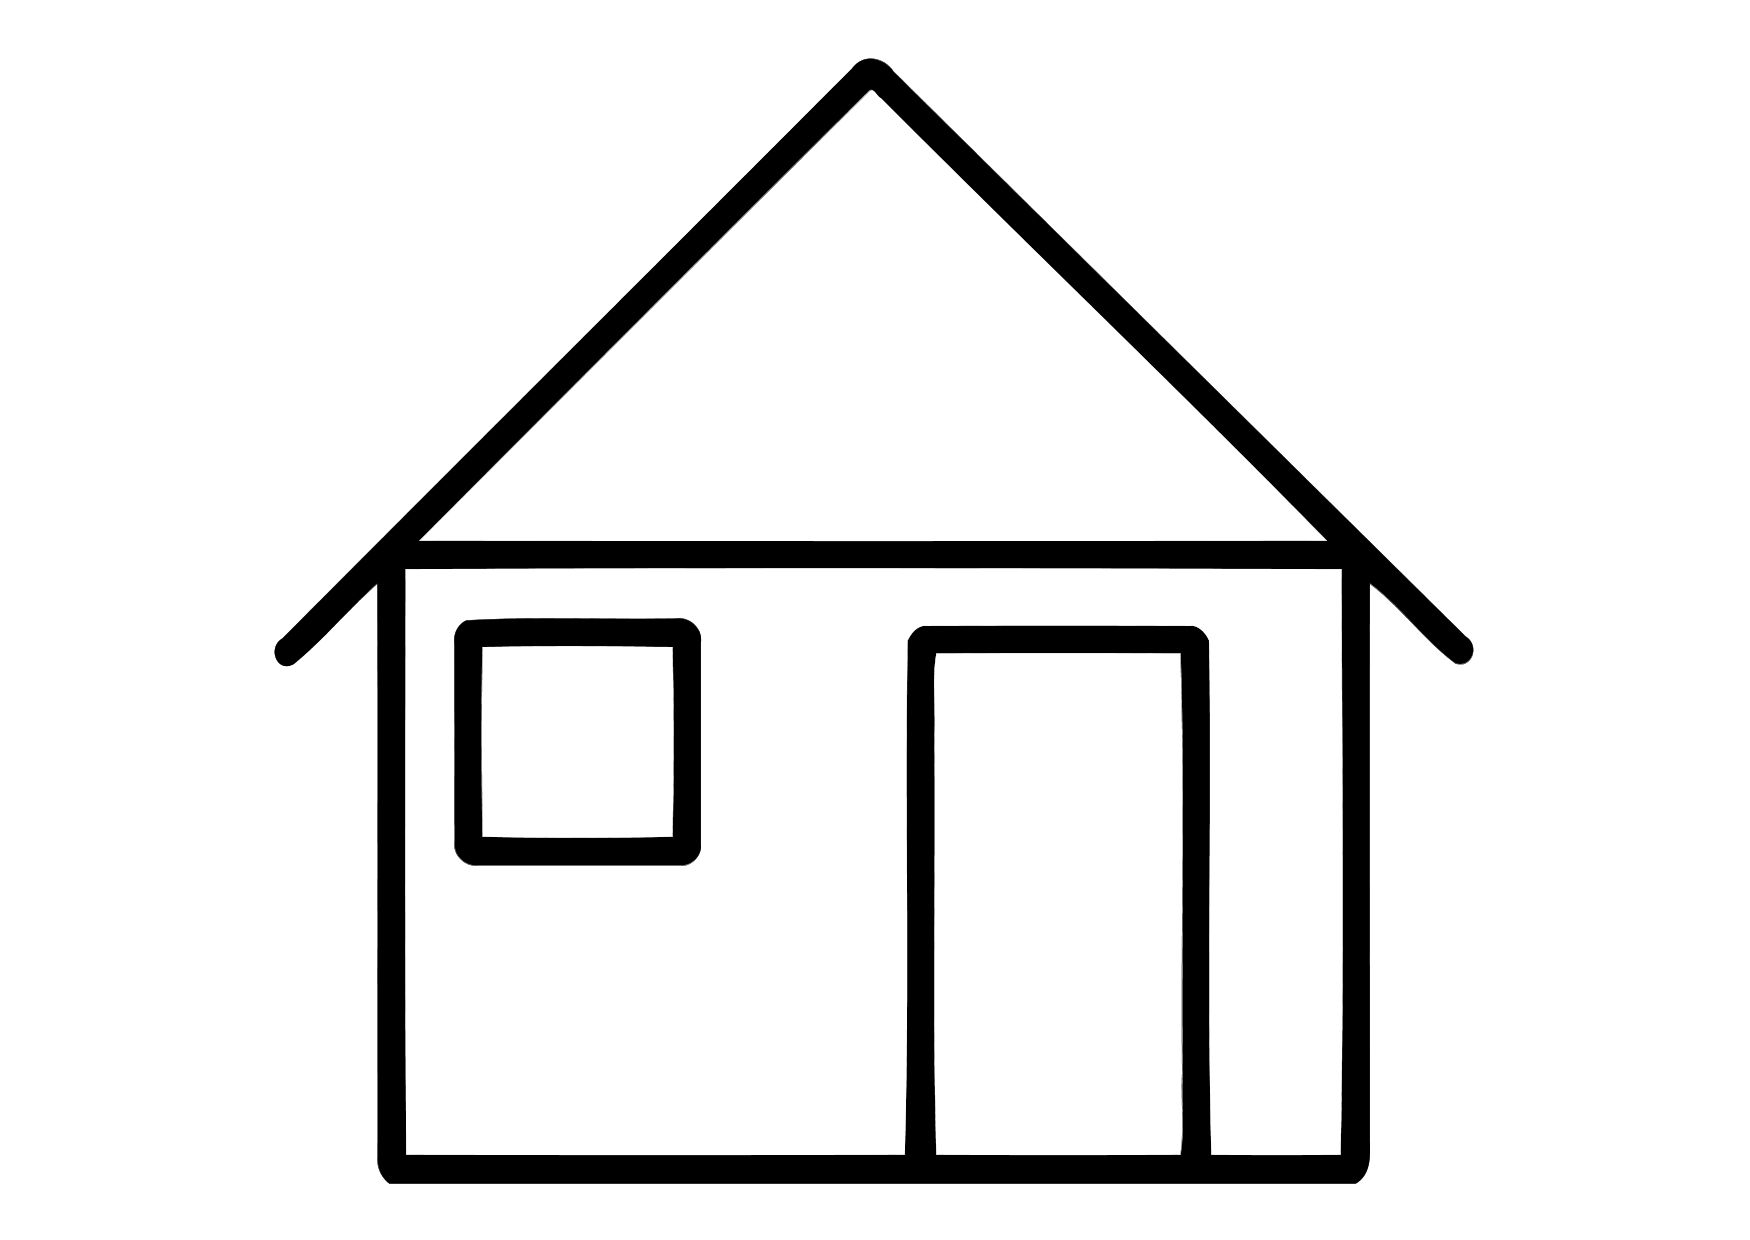 House Coloring Pages To Download And Print For Free House Coloring Pages